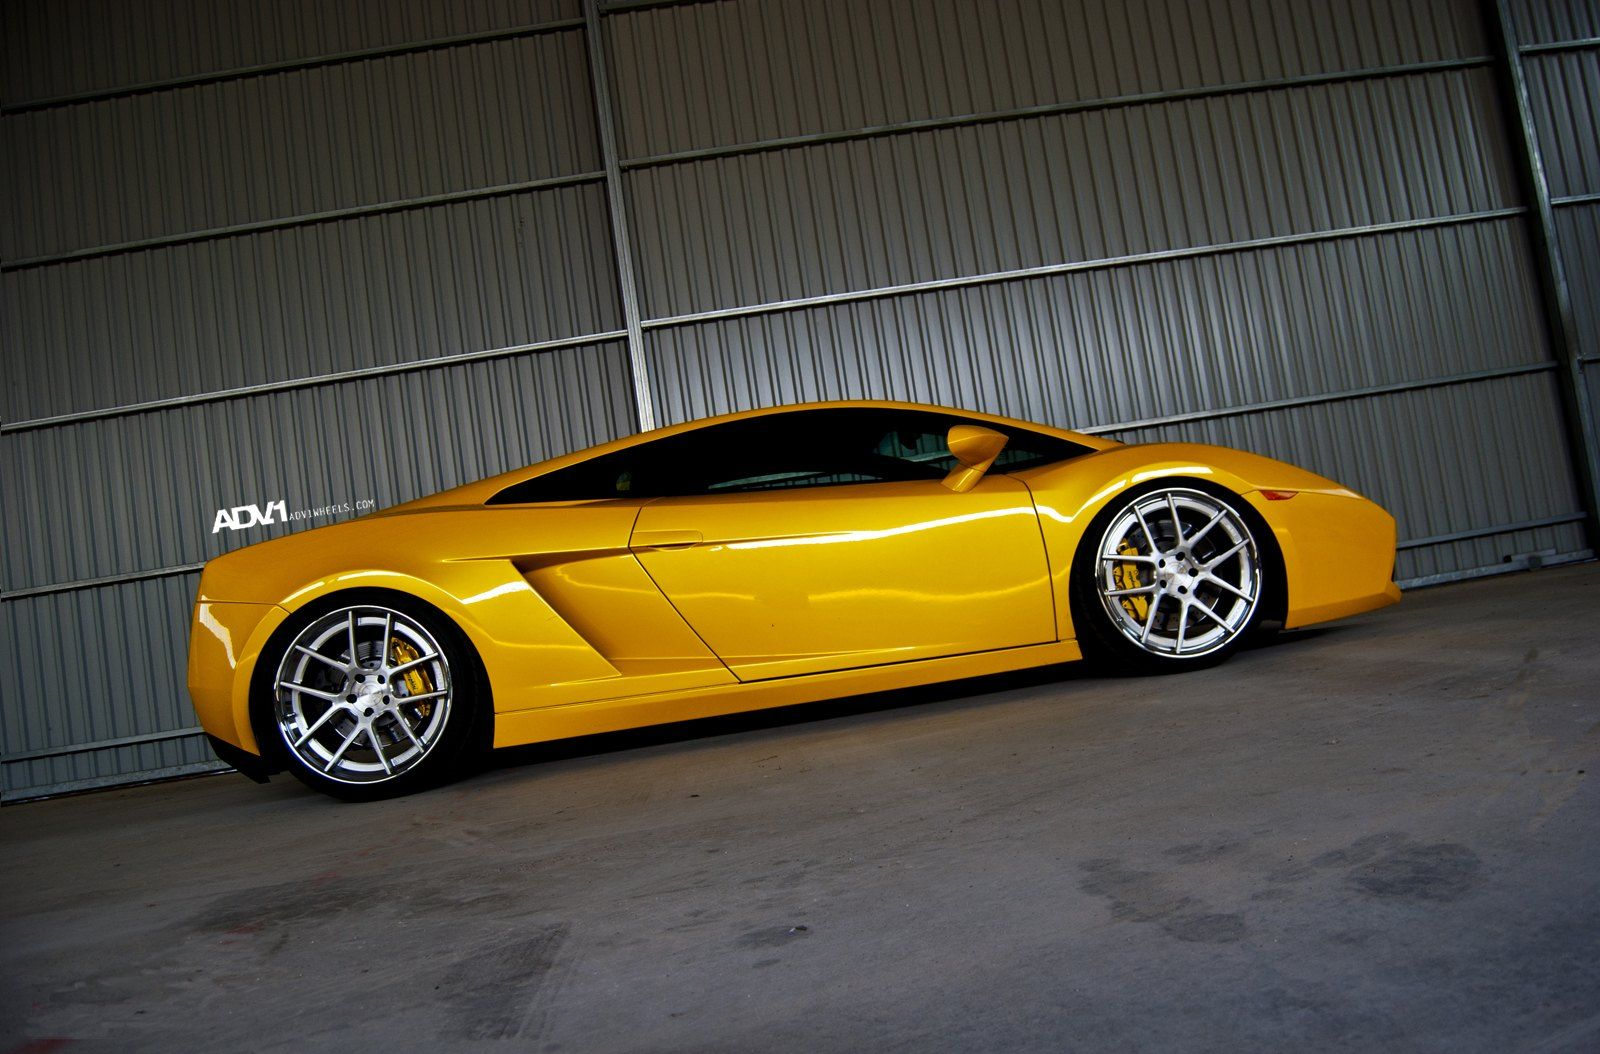 Exclusive style meets performance - Lamborghini Gallardo by ADV1 #lamborghinigallardo